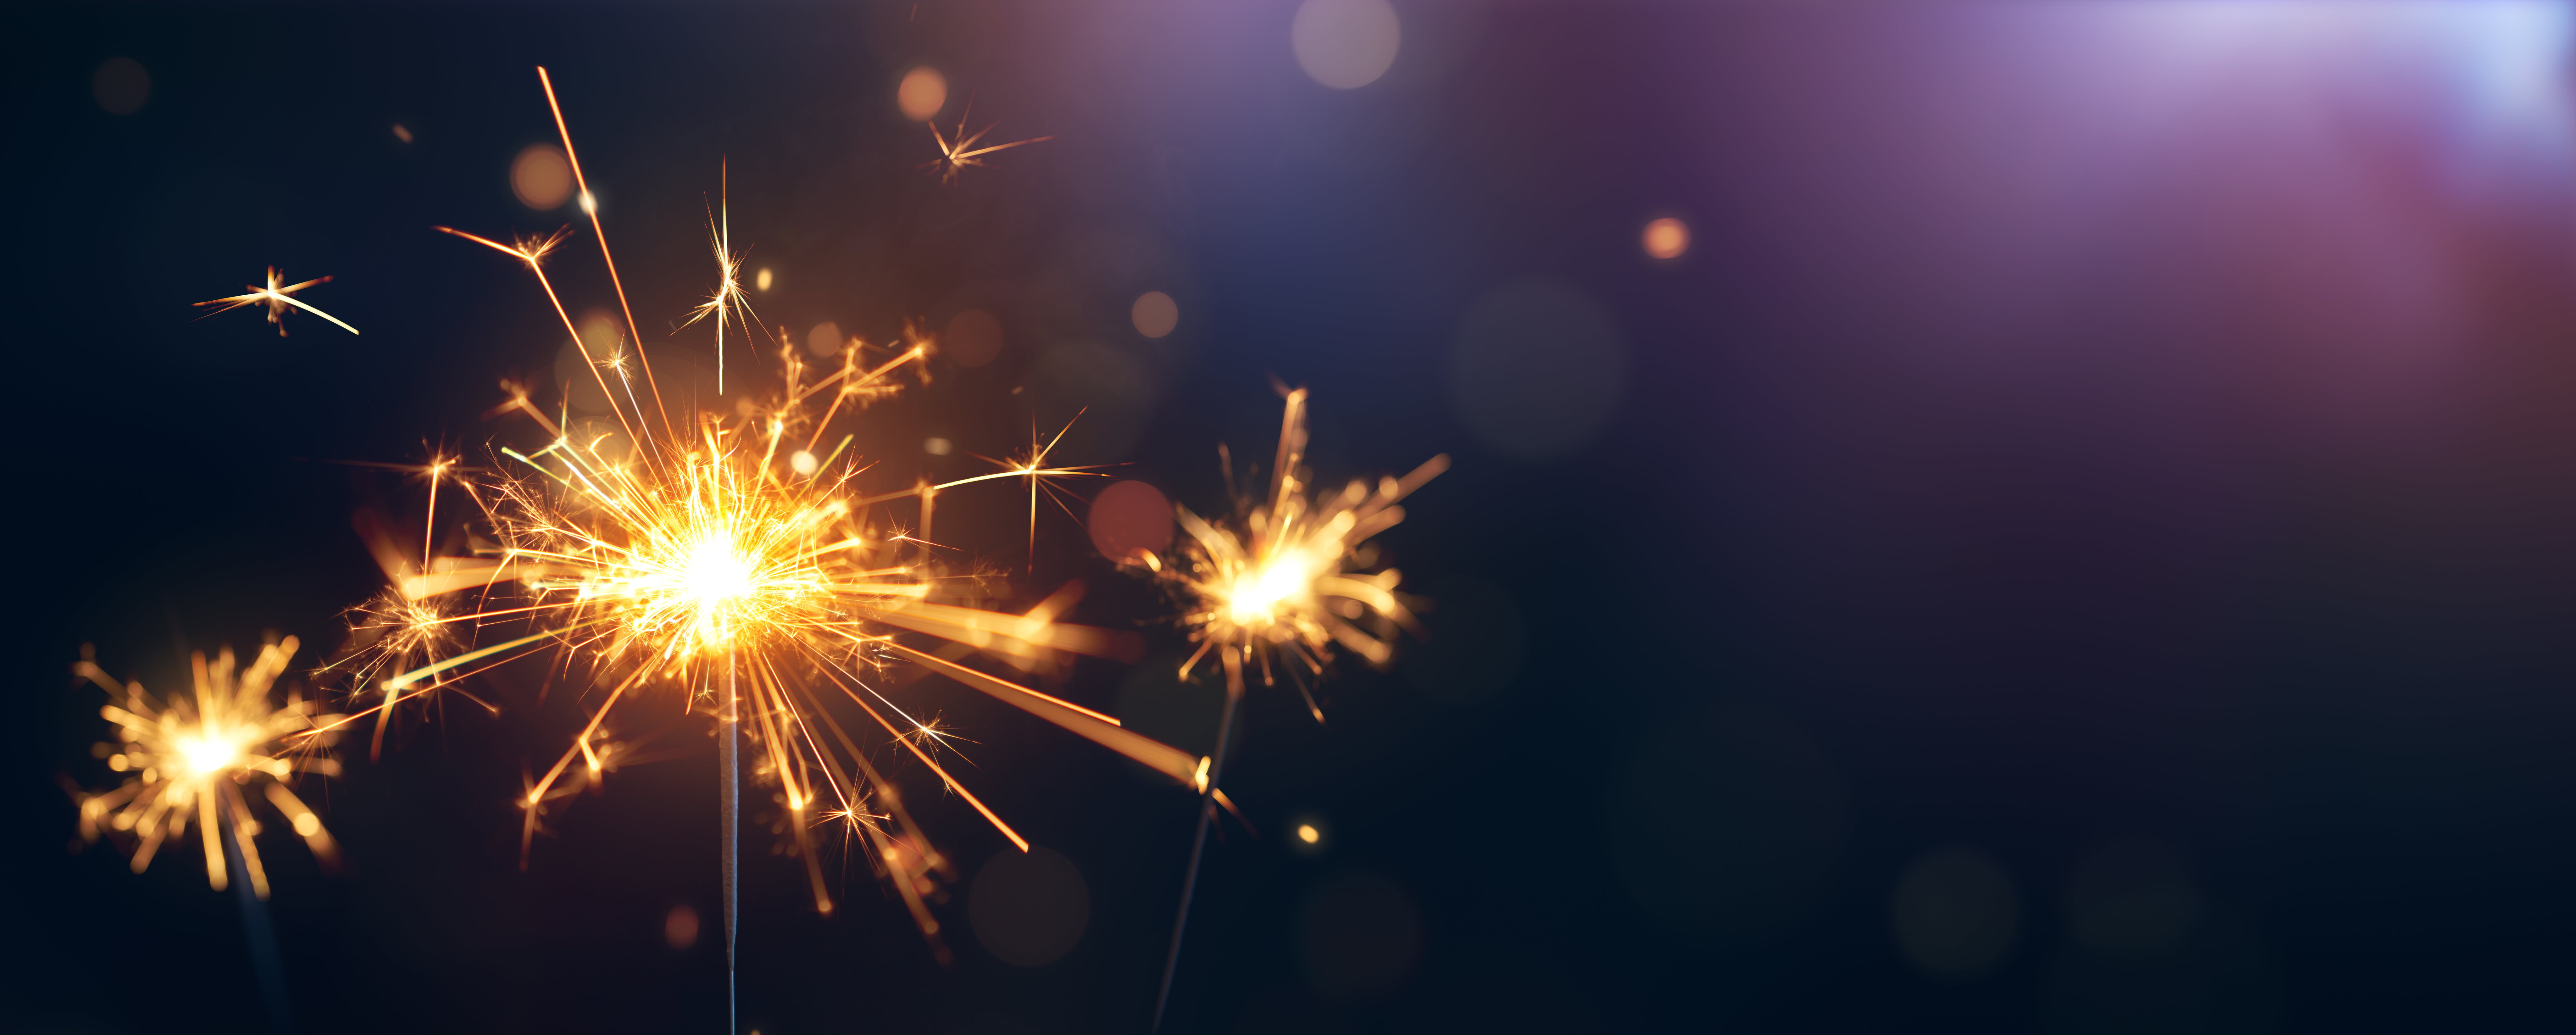 New Year's resolutions: Four steps to get on track and stay there in 2019!